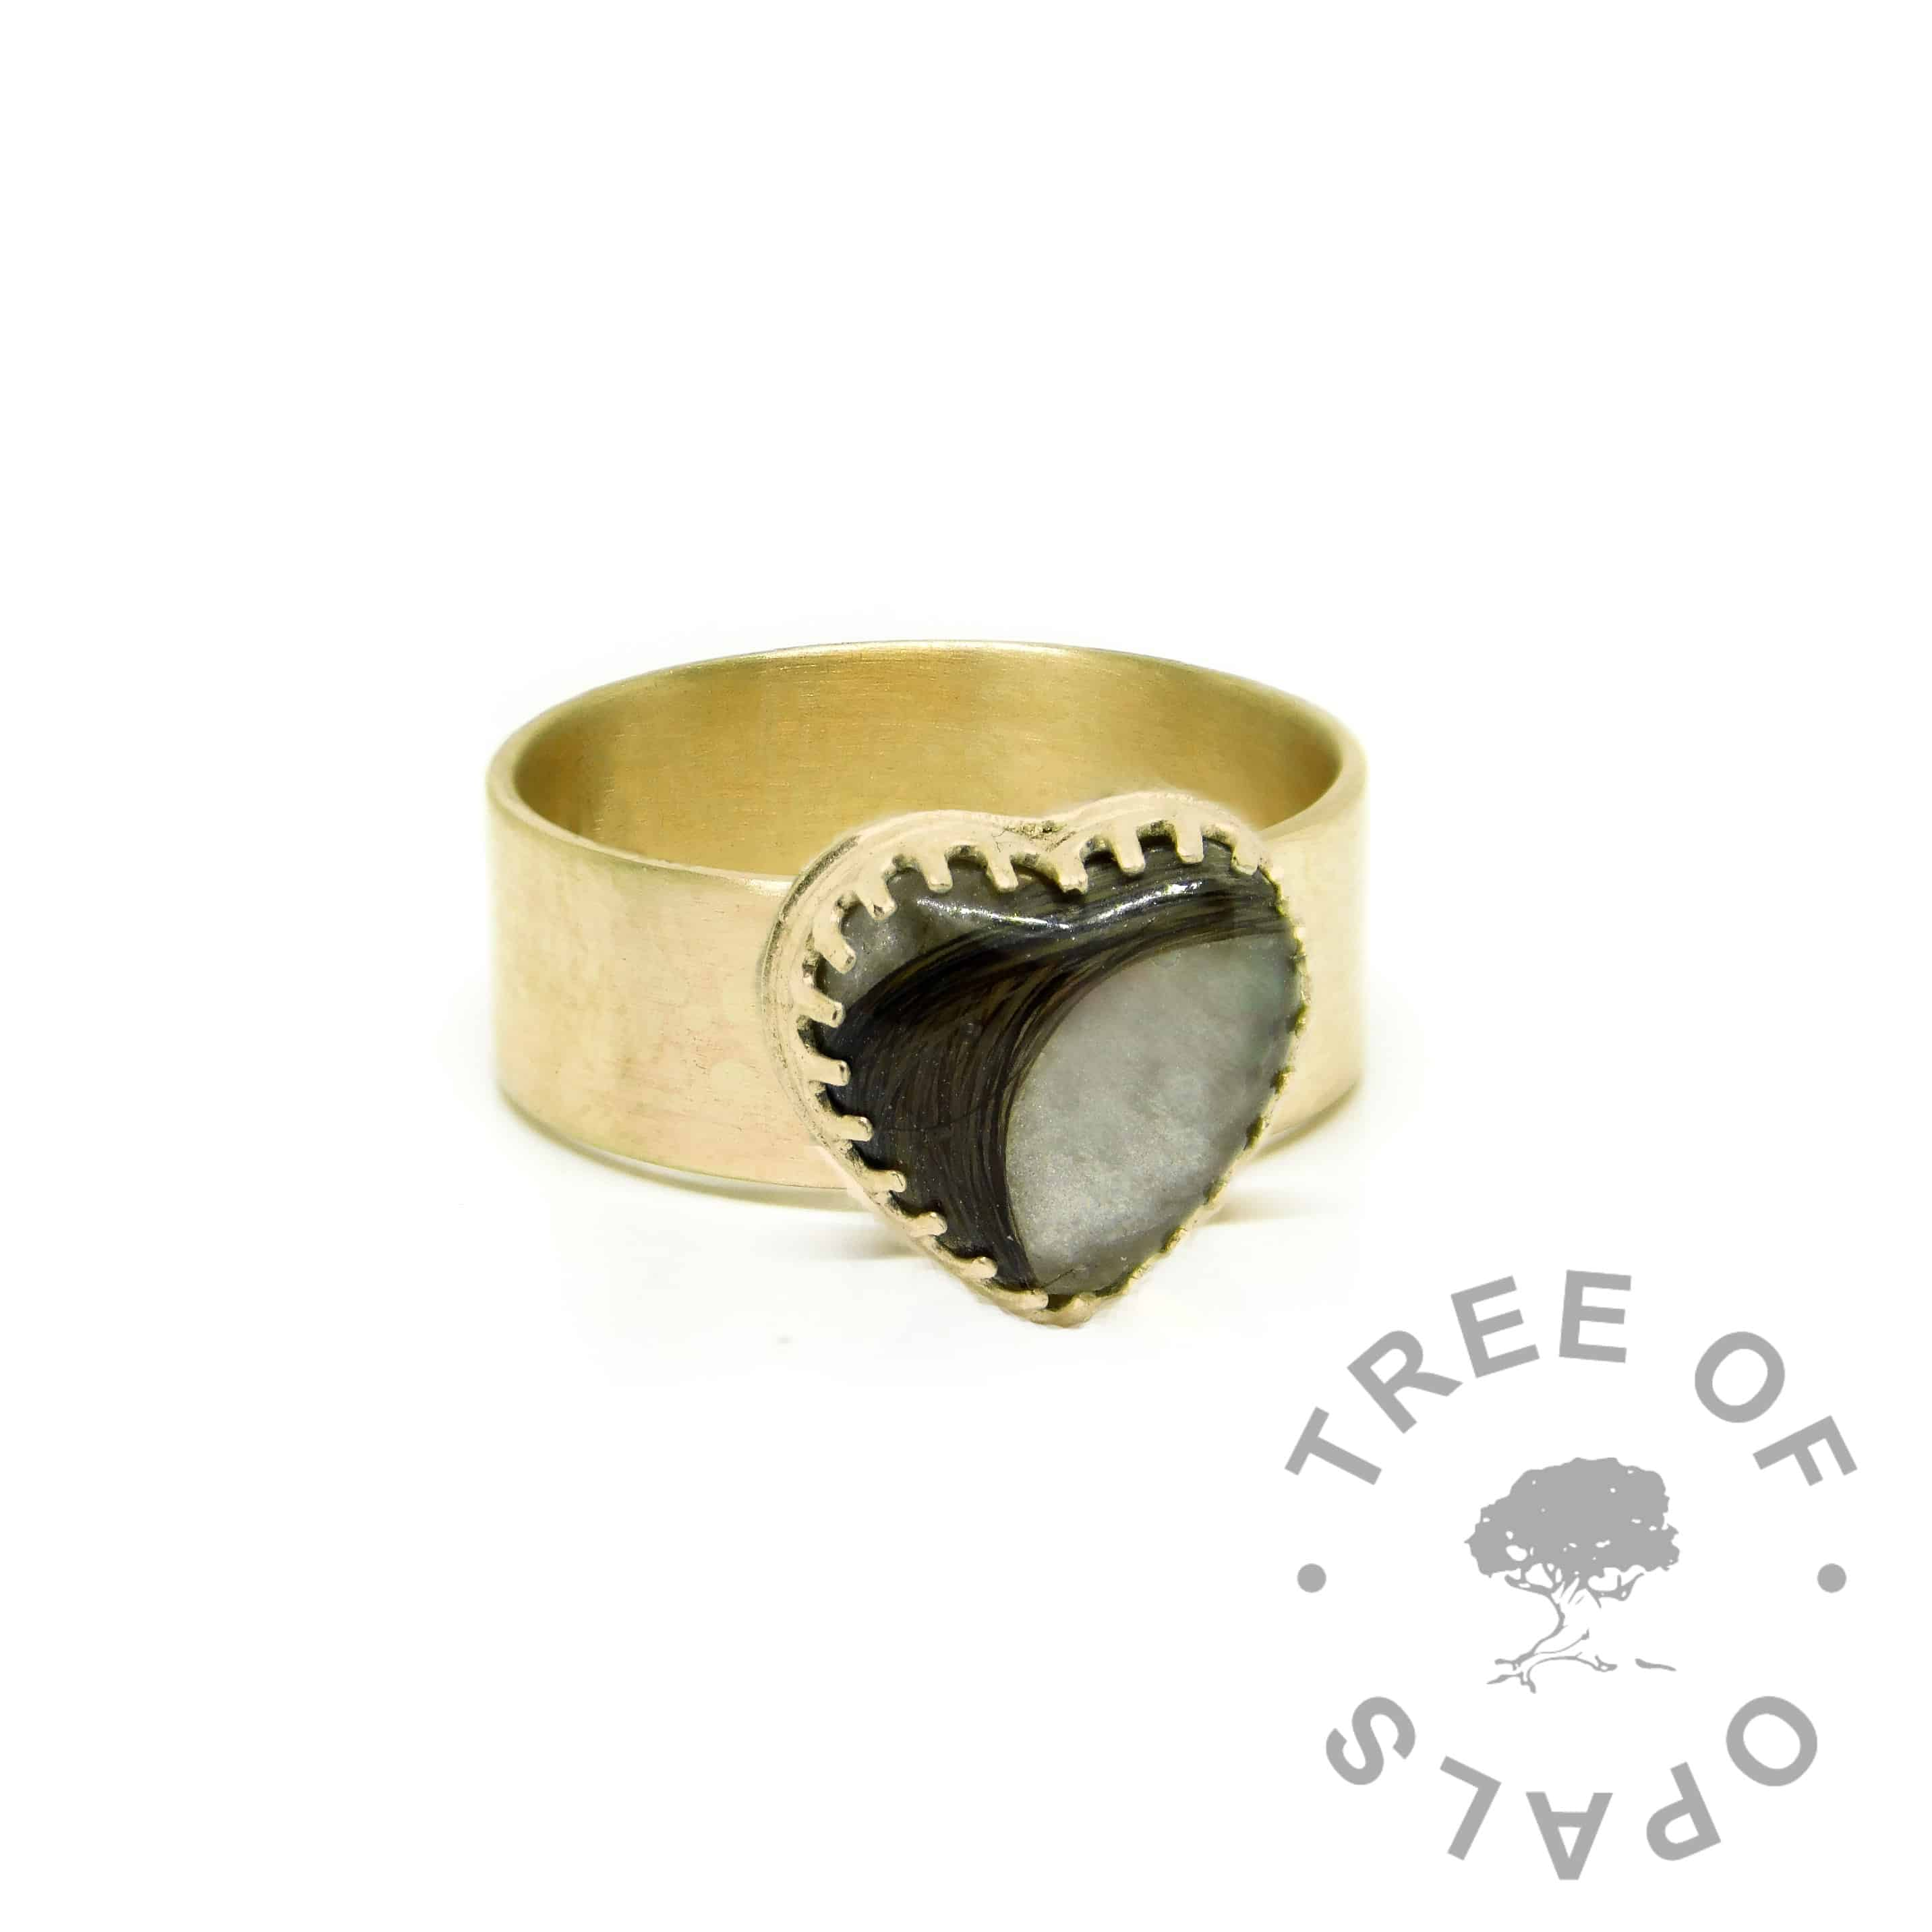 gold hair heart ring wide band, 9ct gold brushed band, unicorn white resin sparkle mix. Mockup